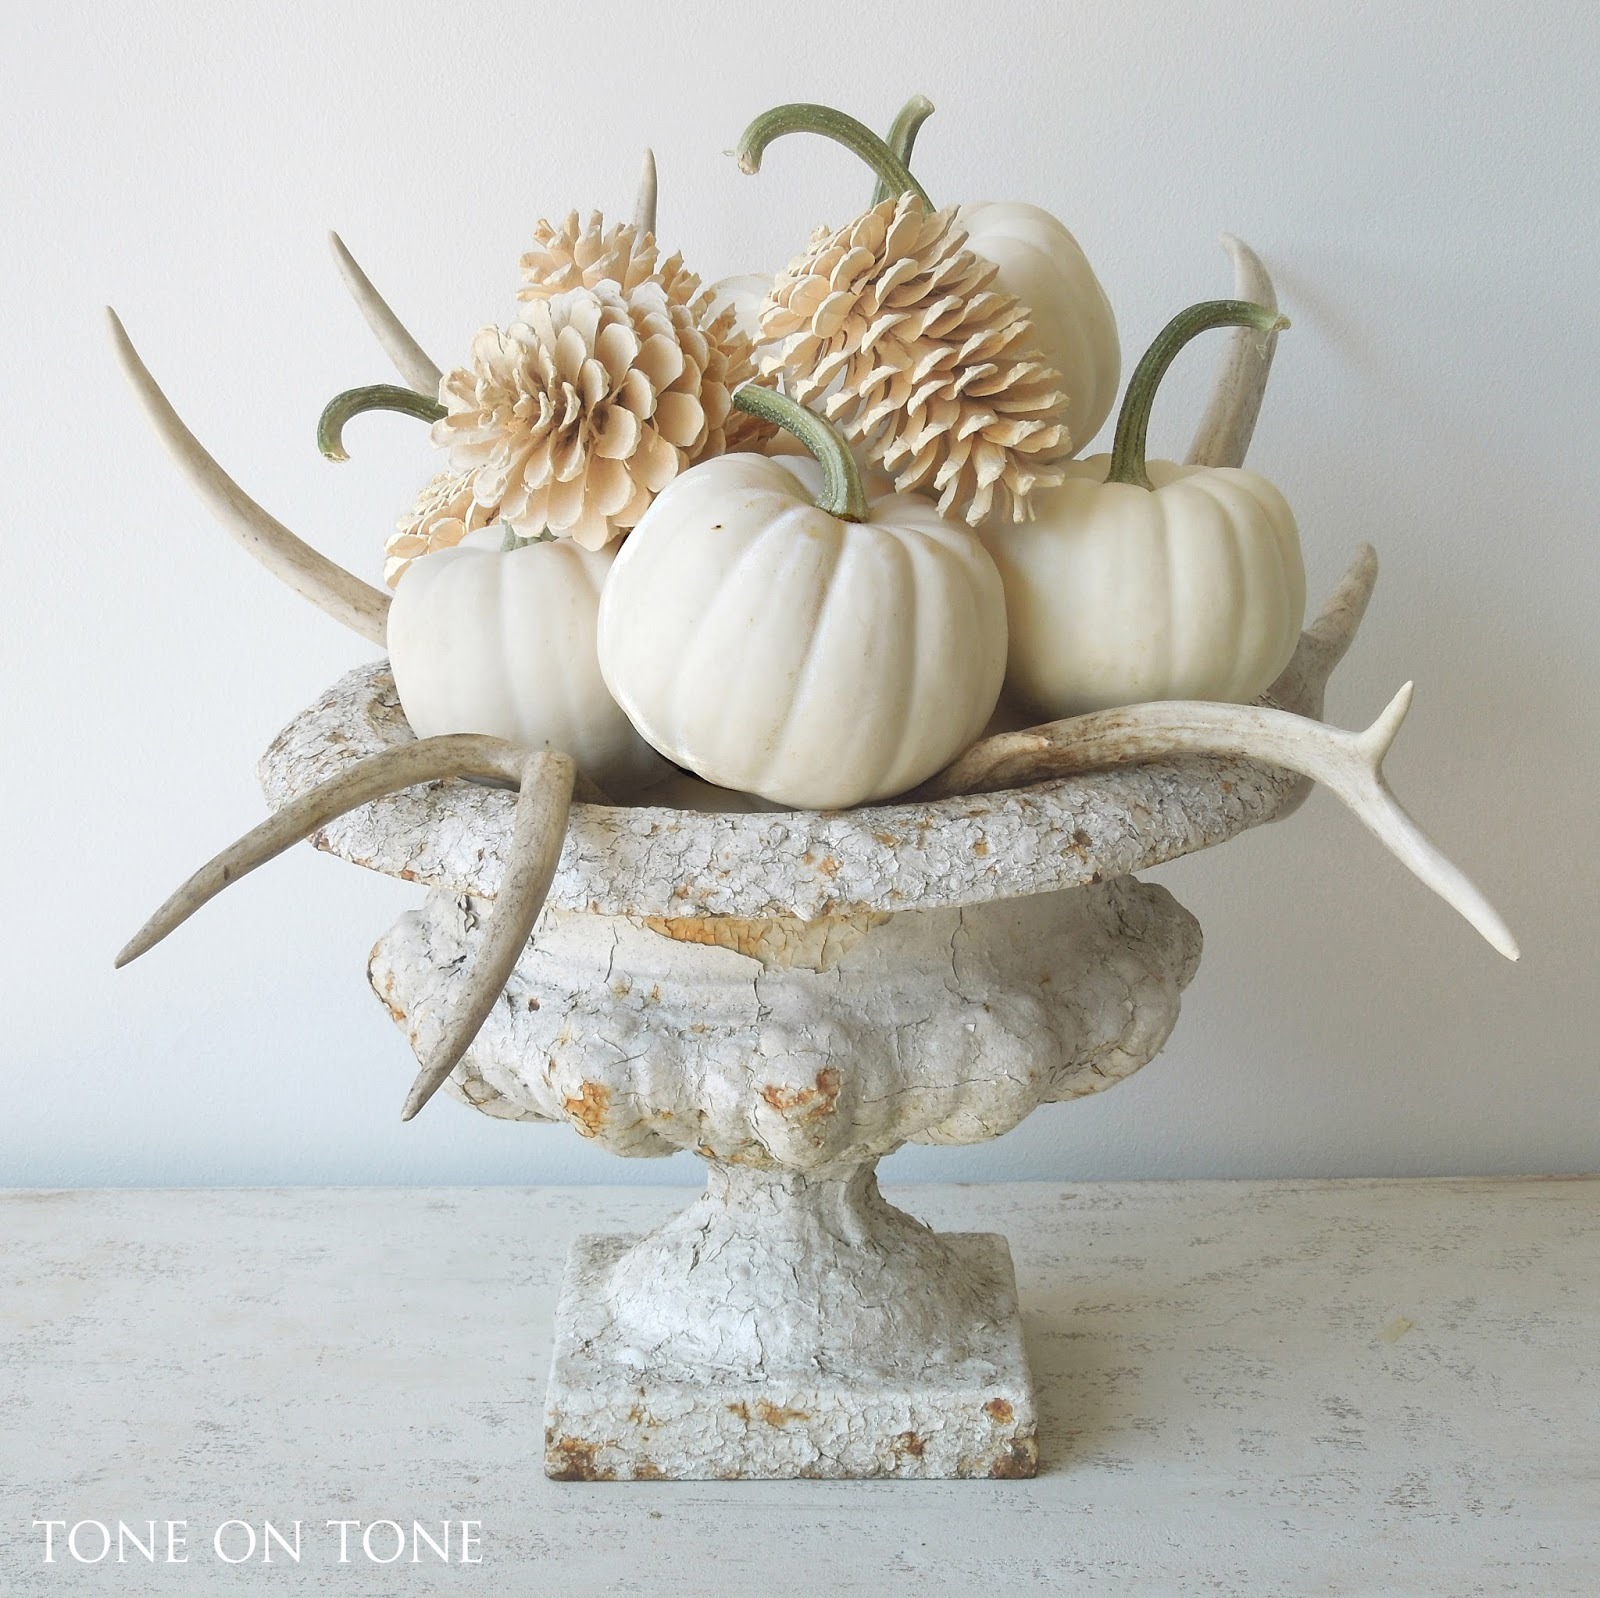 Tone on tone white fall decor and new arrivals White pumpkin carving ideas